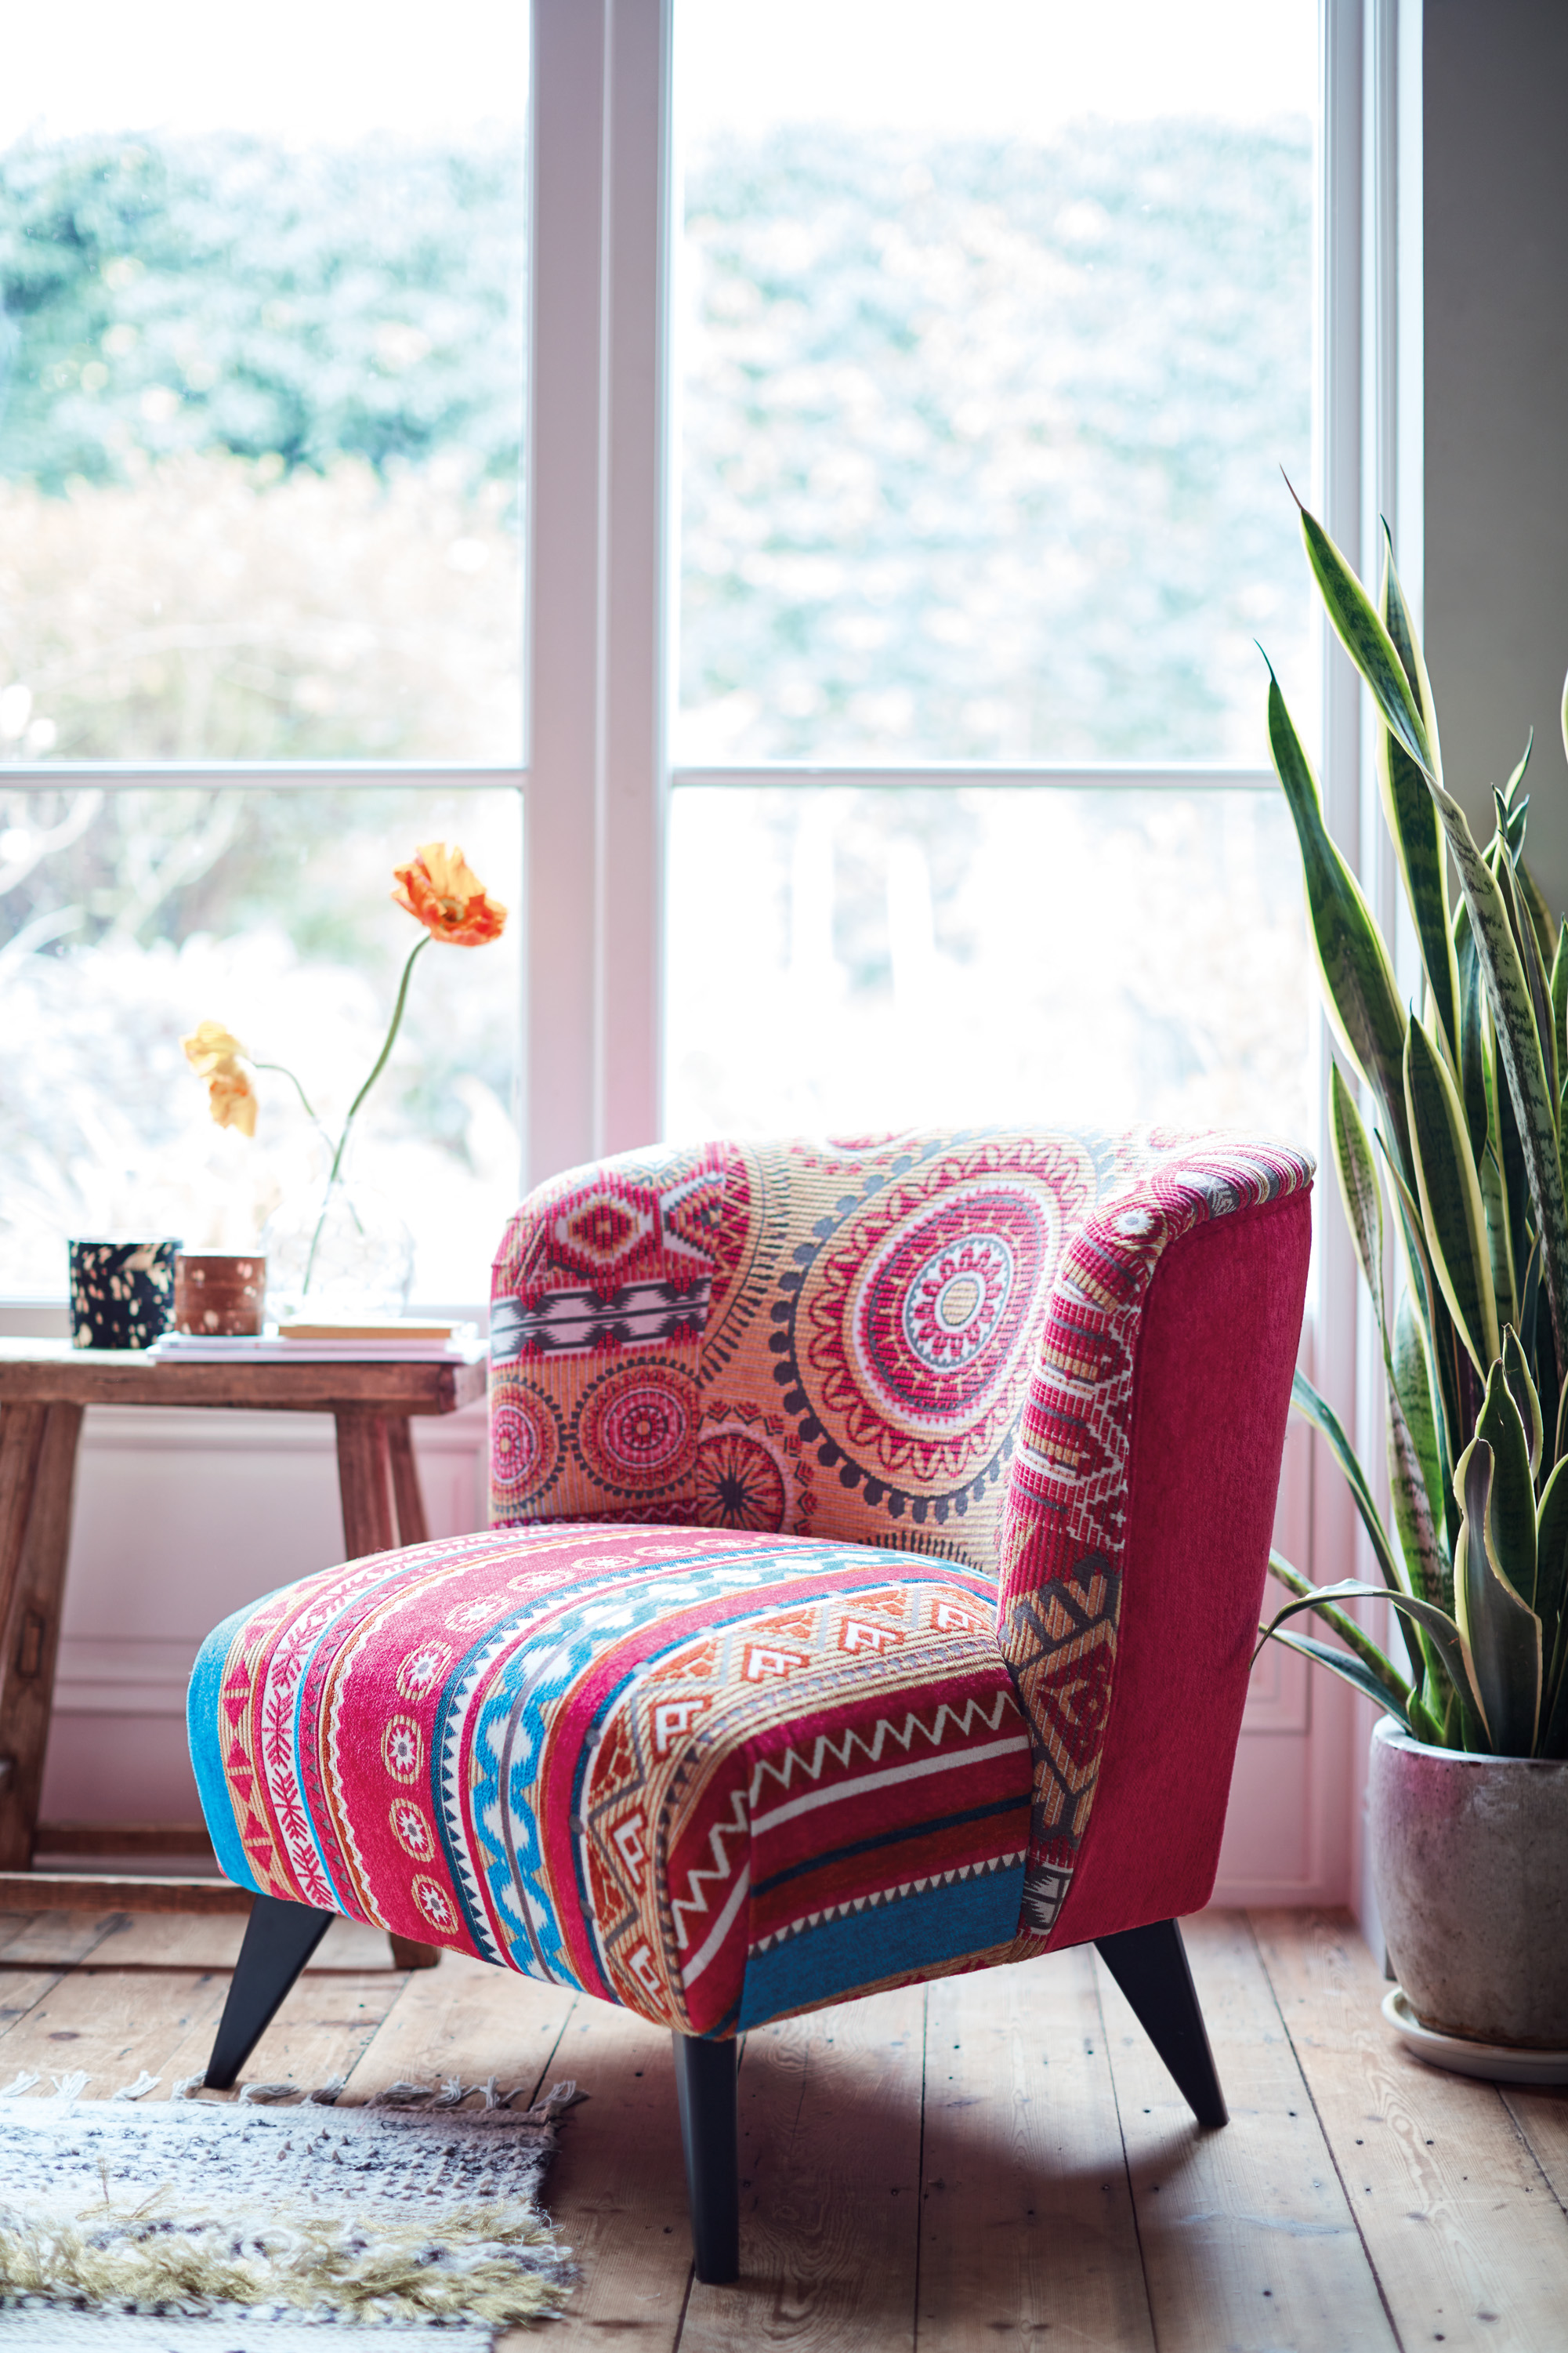 Enjoyable Transitional Trends How To Keep A Summer Glow At Home As Caraccident5 Cool Chair Designs And Ideas Caraccident5Info